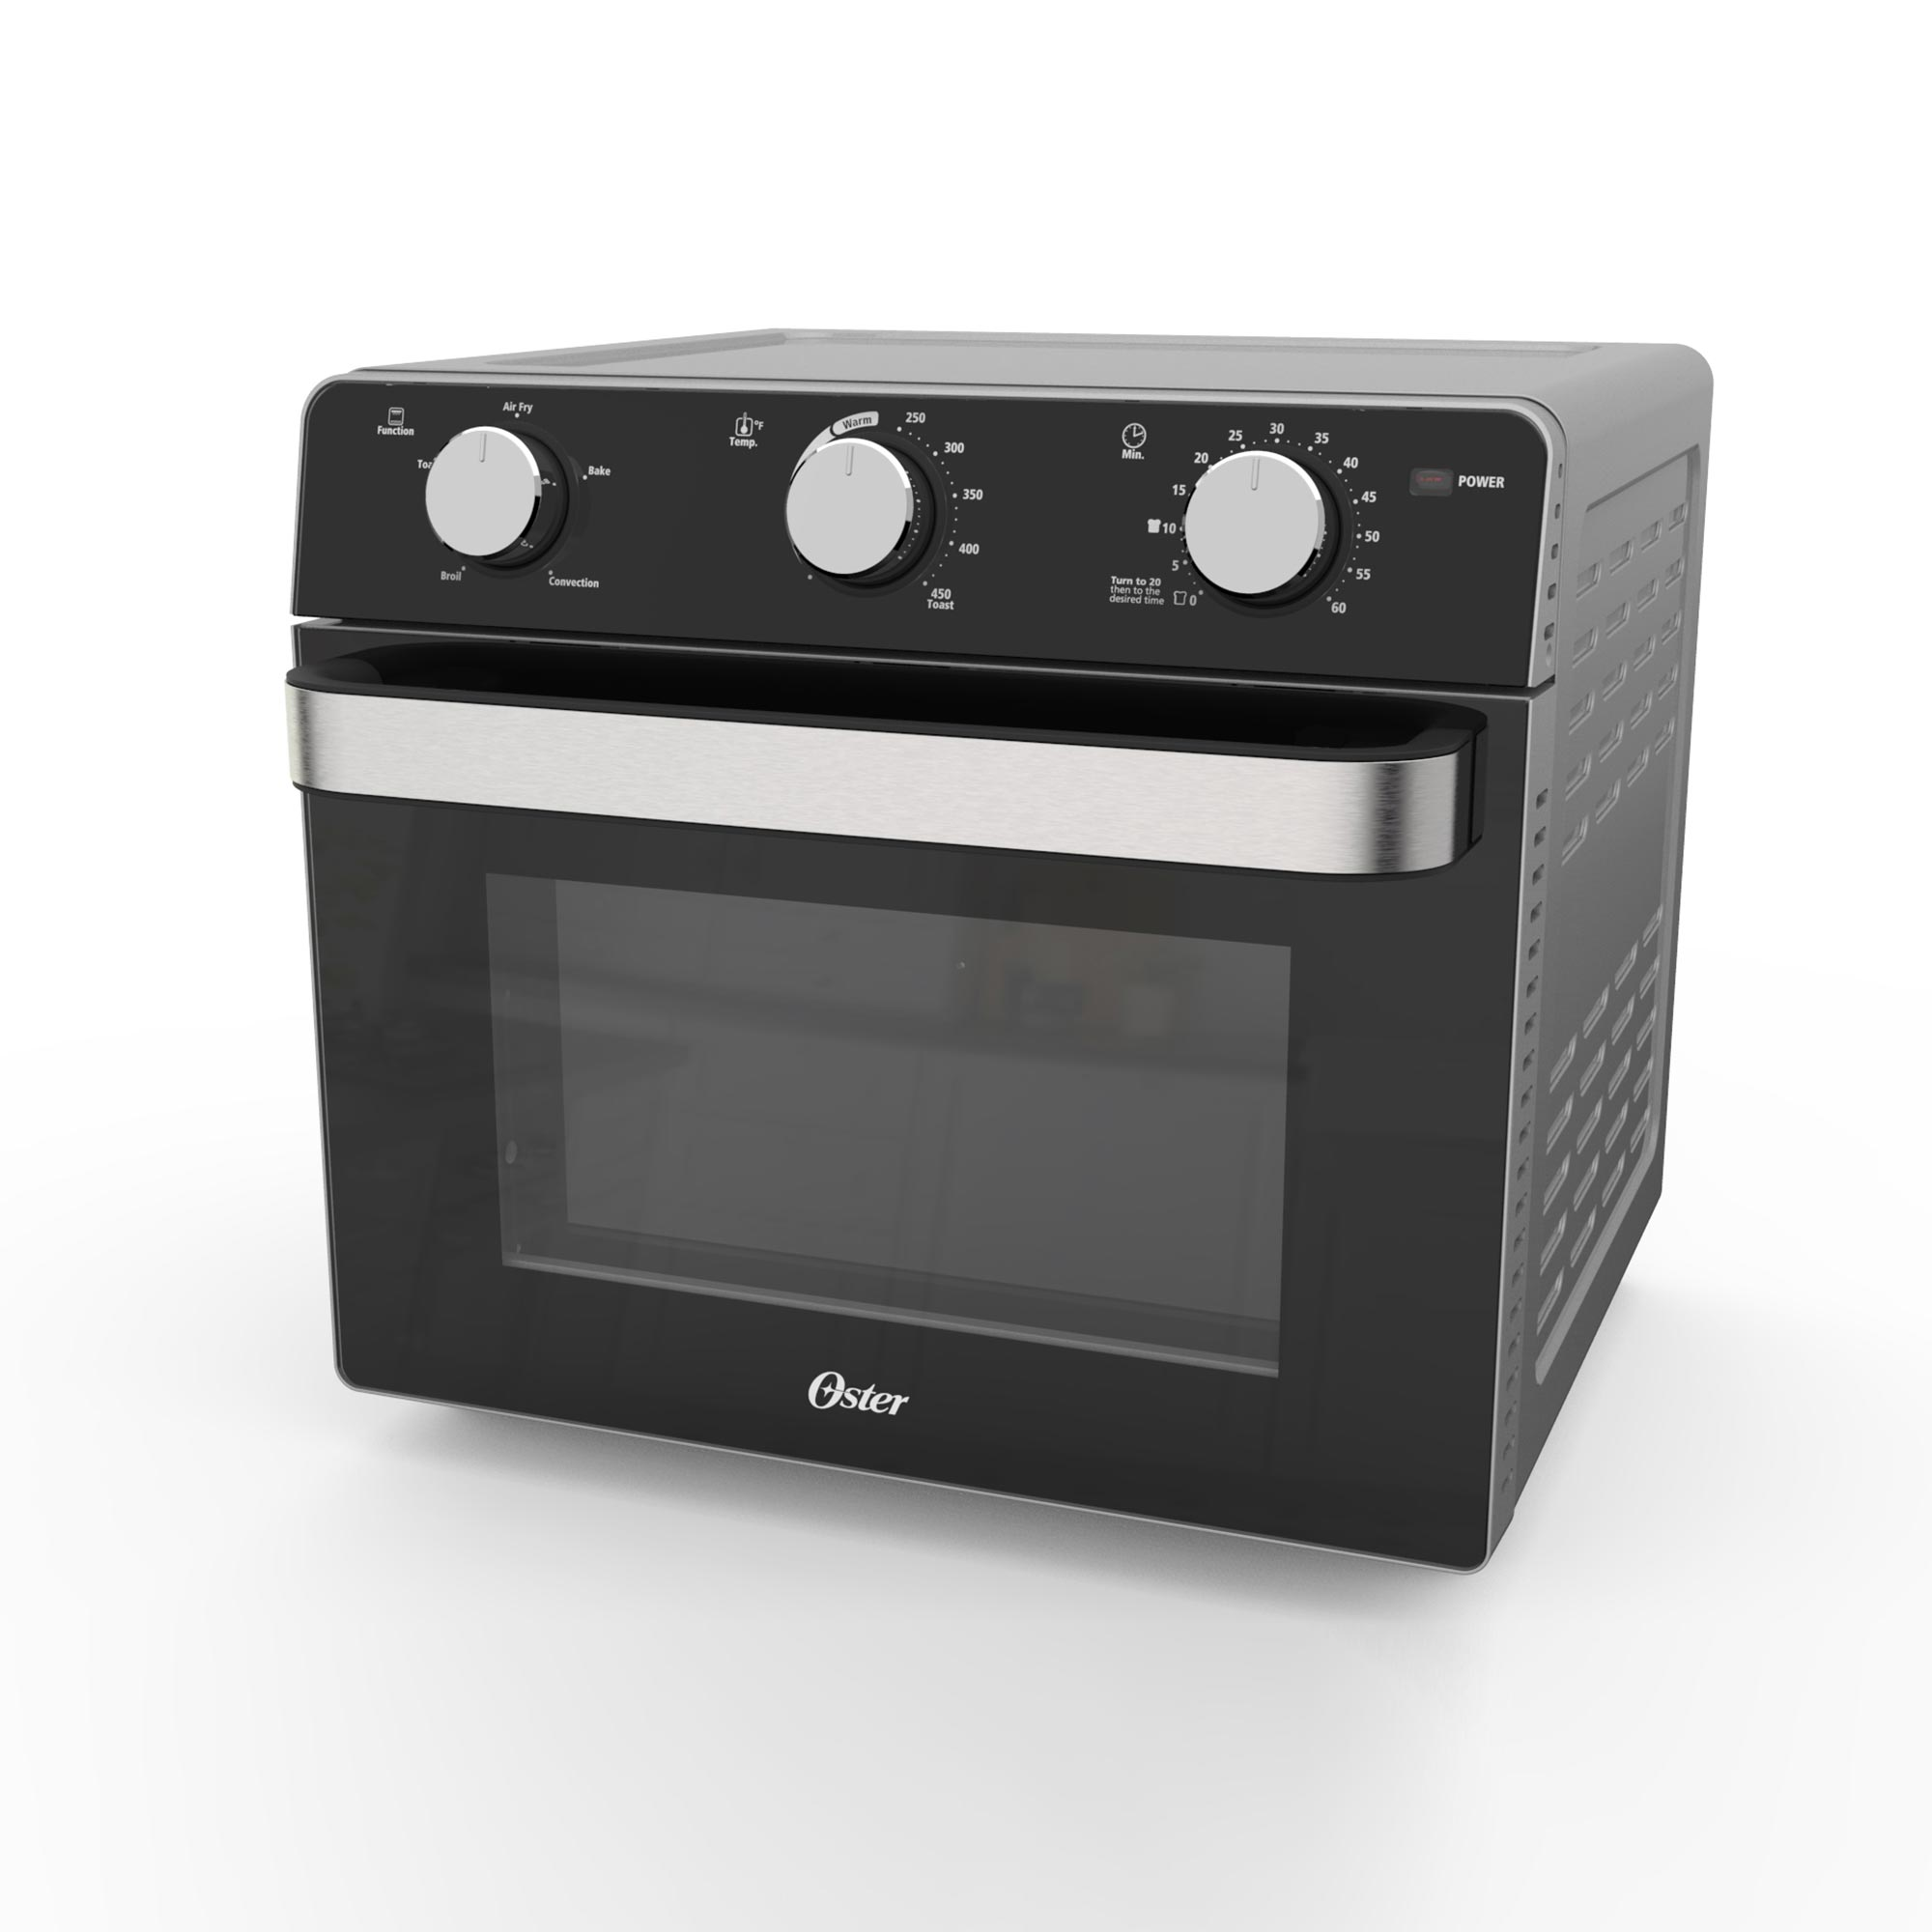 Oster Countertop Toaster Oven with Air Fryer, Black | Model TSSTTVMAF1